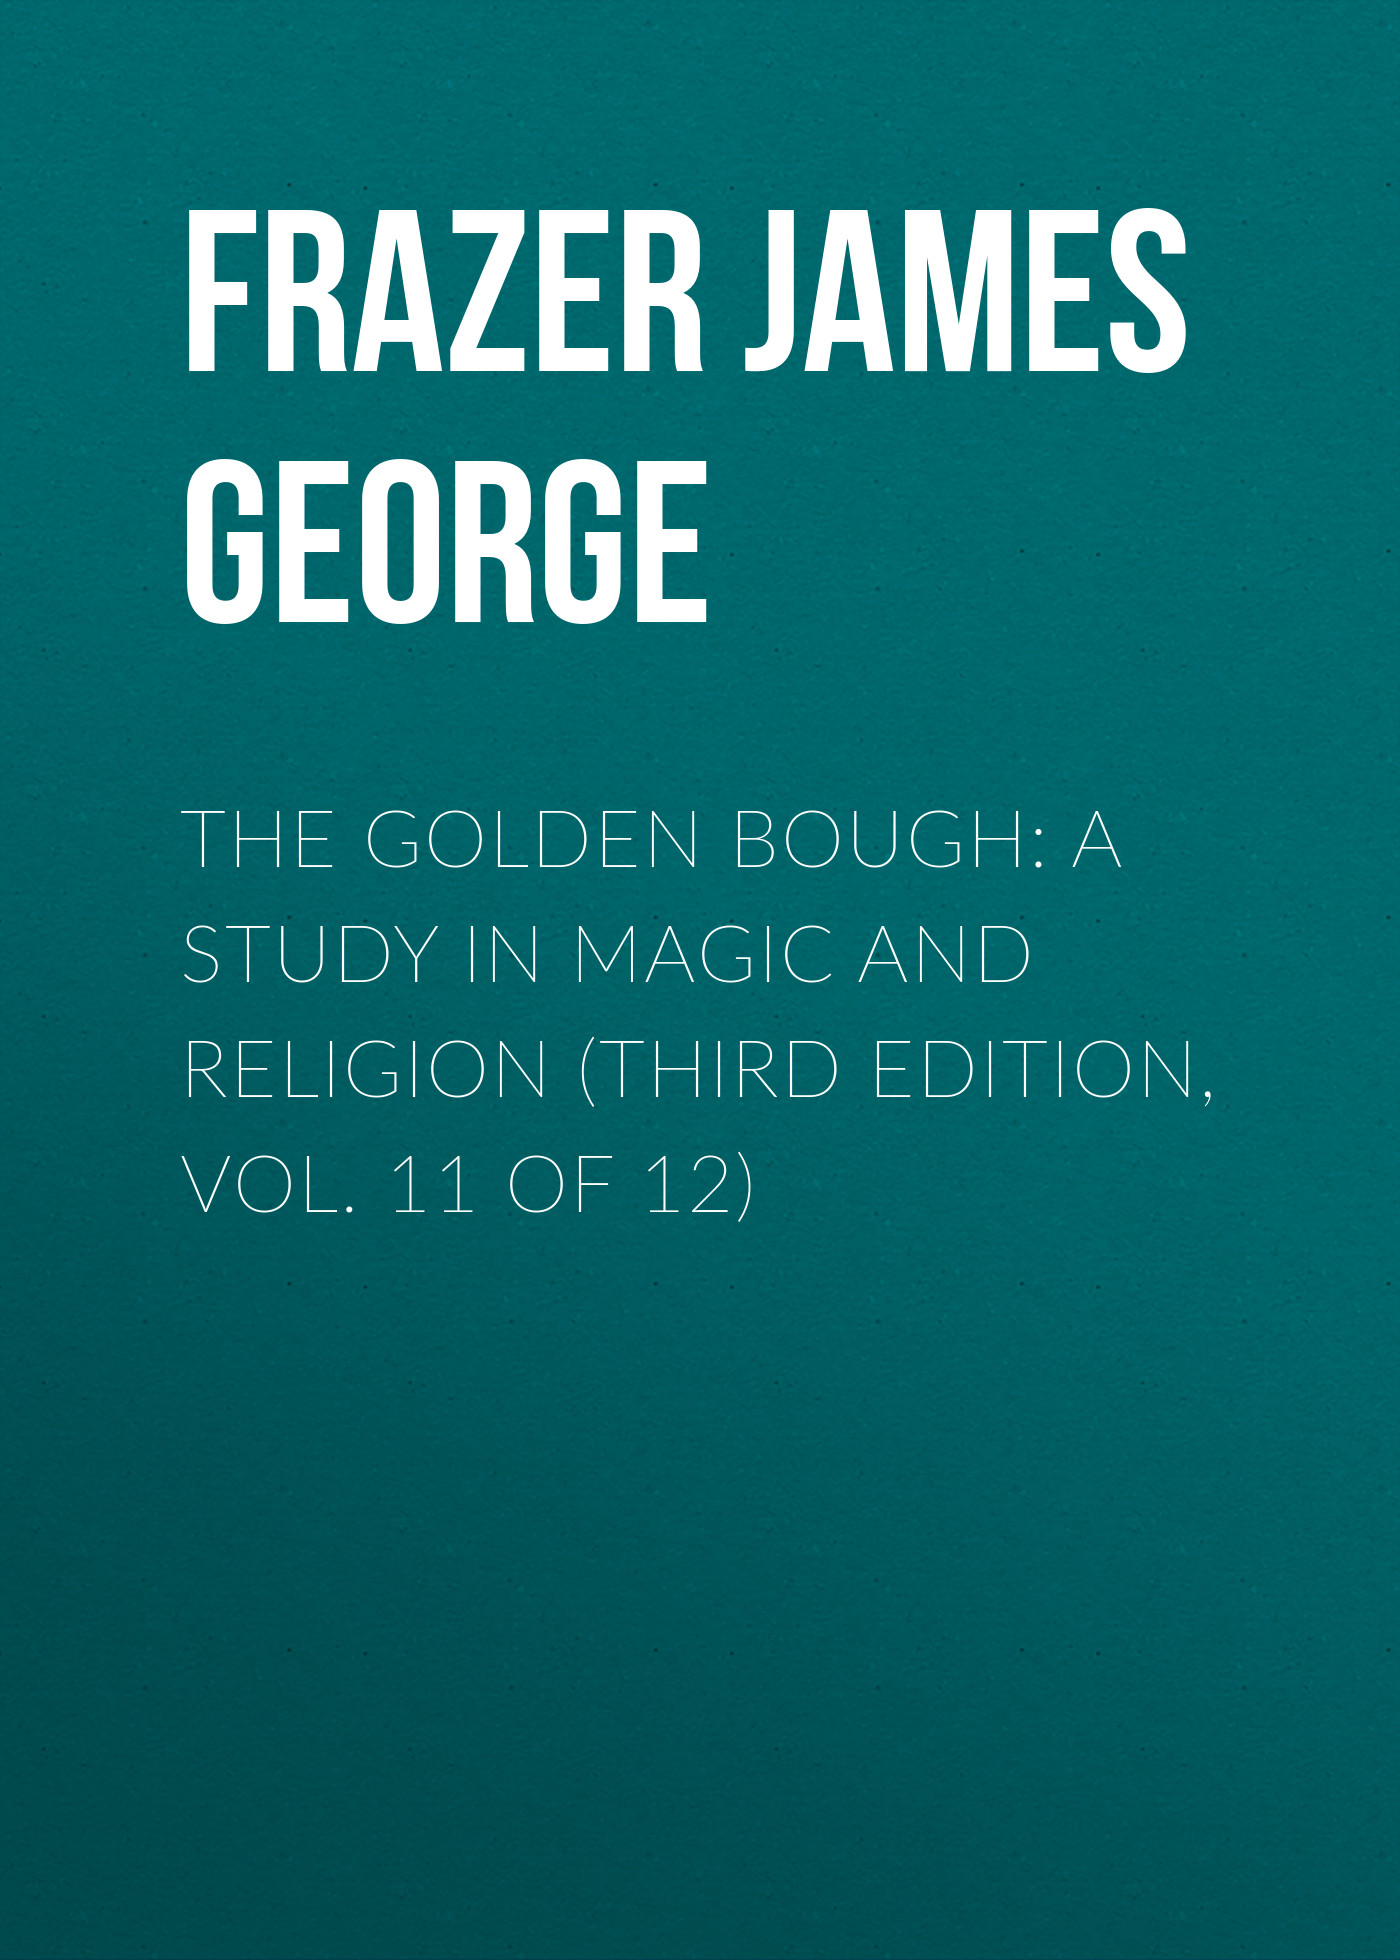 Frazer James George The Golden Bough: A Study in Magic and Religion (Third Edition, Vol. 11 of 12) frazer james george the belief in immortality and the worship of the dead volume 2 of 3